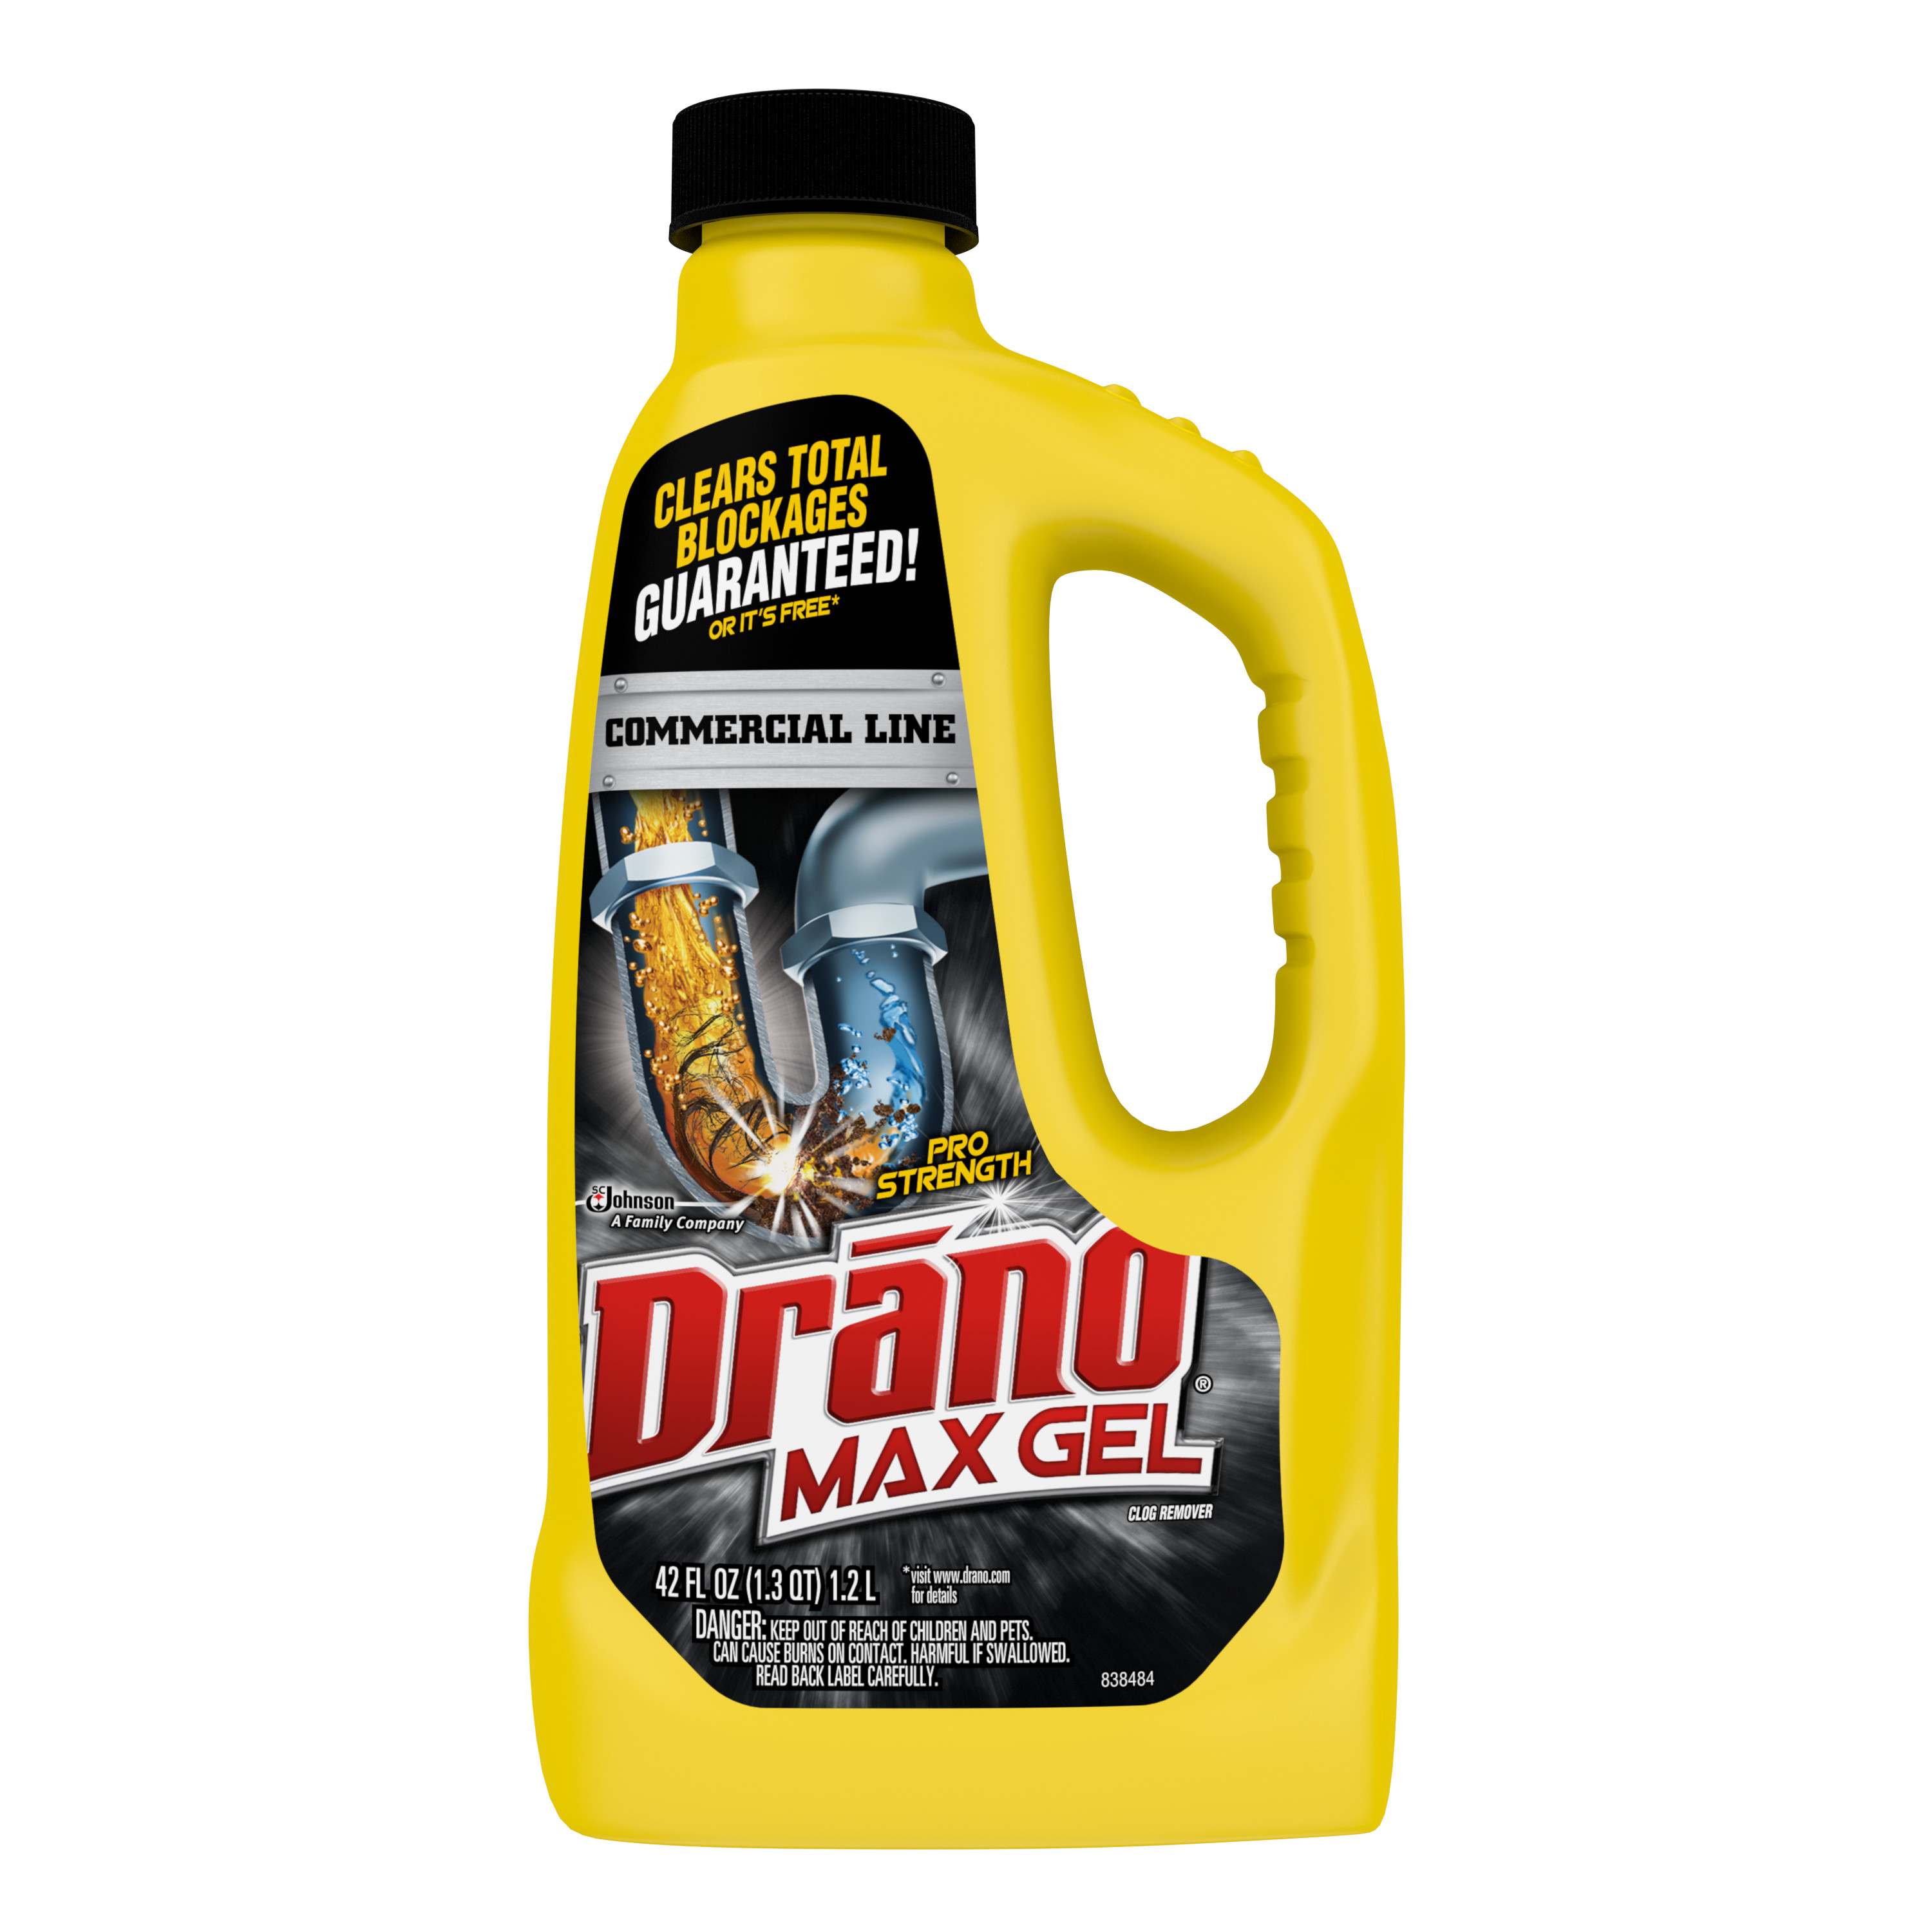 Drano Max Gel Clog Remover 42 Ounces. Commercial Line